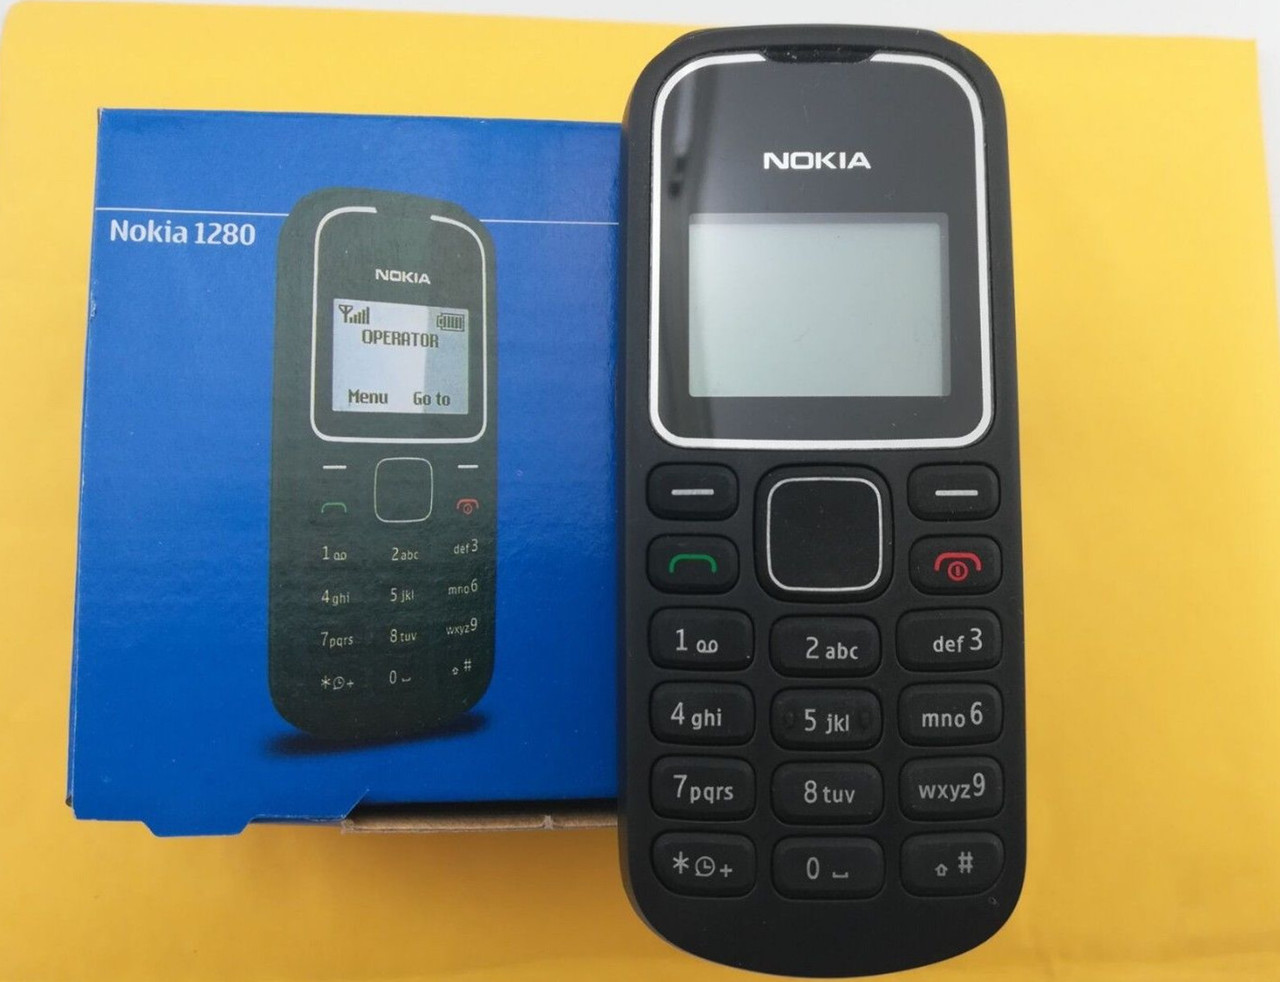 Refurbished phone mobile phone Nokia 1280 Unlocked Wholesale 1280 GSM Cheap Cell phone blue 12